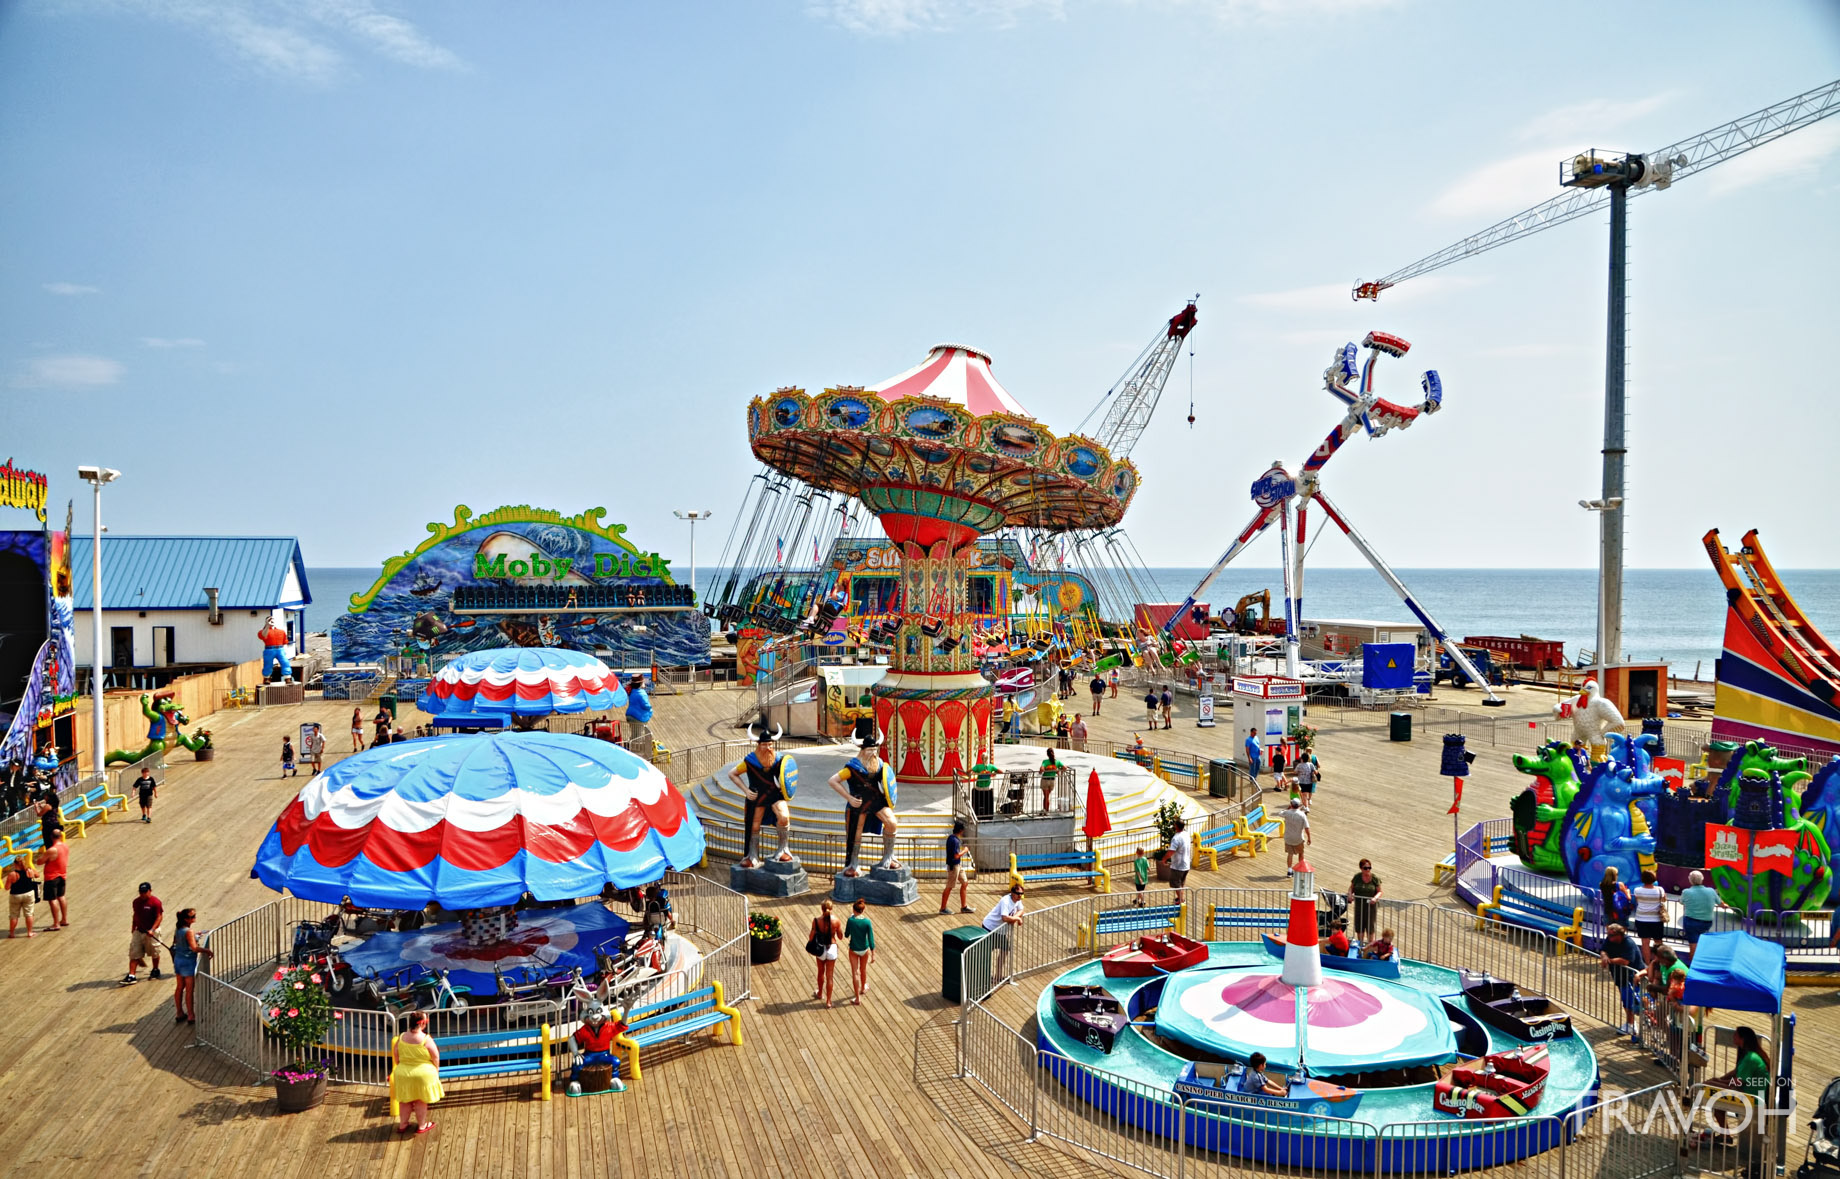 Casino Pier - 800 Ocean Terrace, Seaside Heights, NJ, USA